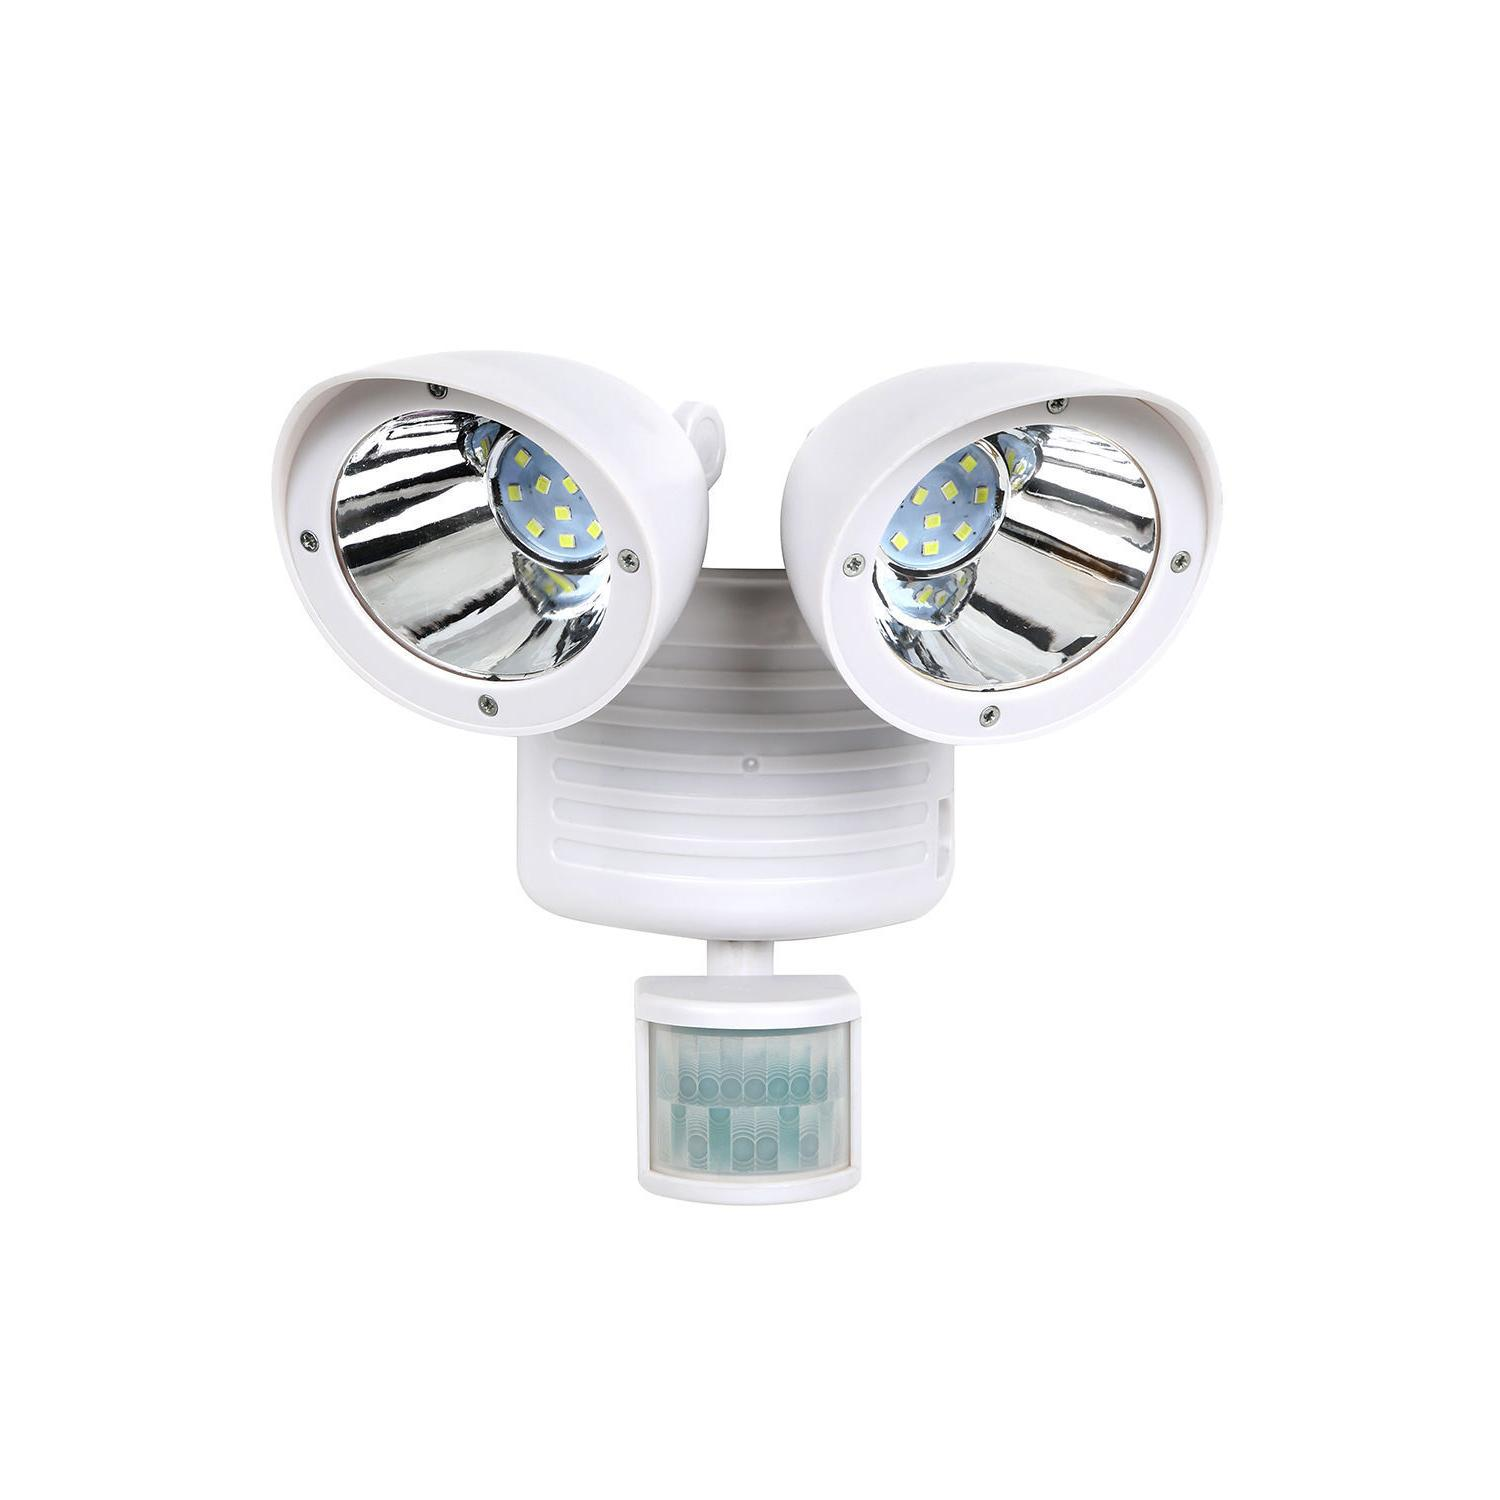 22 LED Dual Detector Spot Light Motion Sensor Outdoor